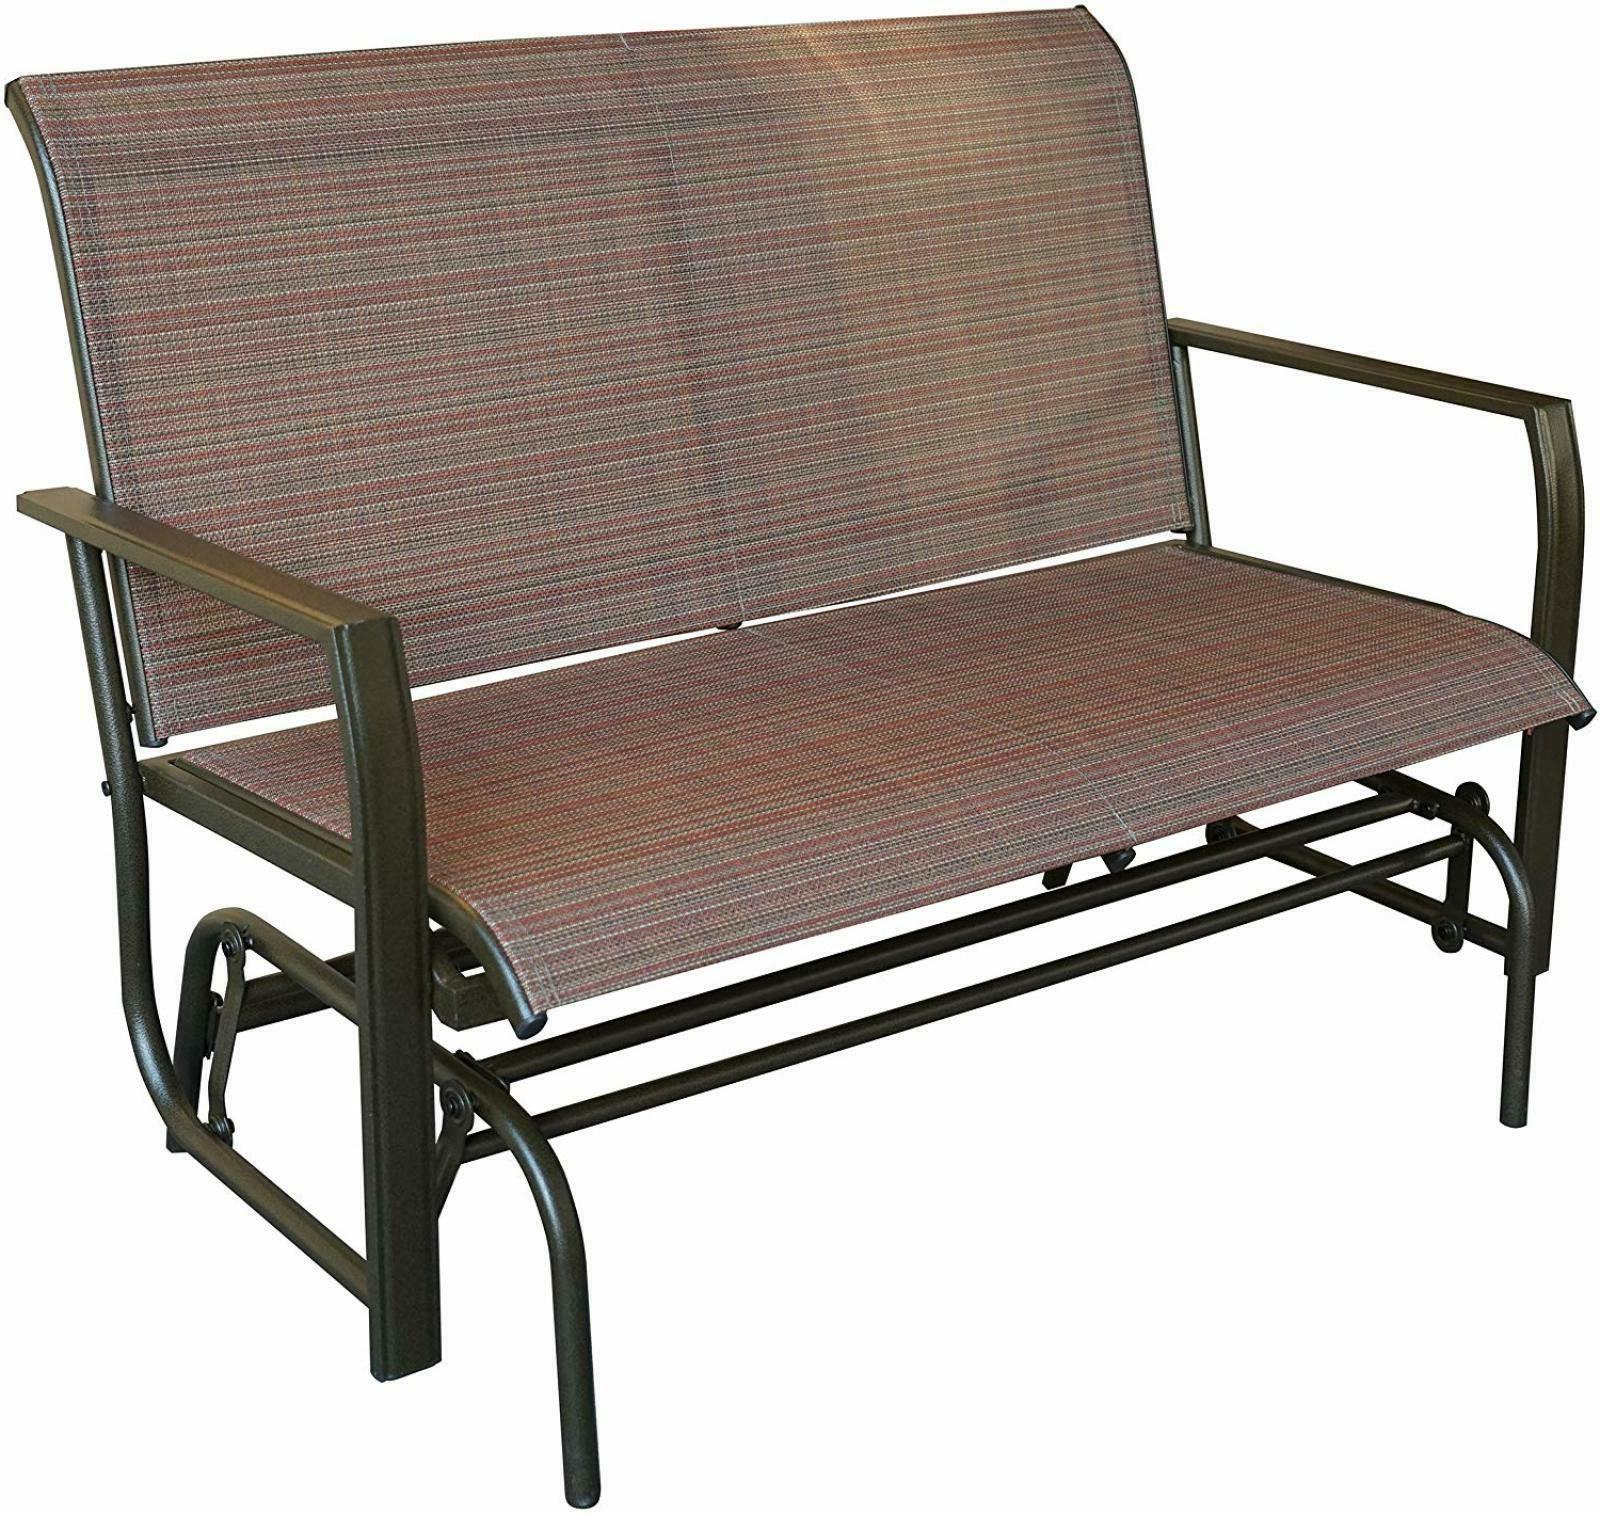 Love Seat Swing Bench For Patio Textile And Sturdy Frame Glider Rocker Tan  Brown In Fashionable Rocking Love Seats Glider Swing Benches With Sturdy Frame (View 10 of 30)